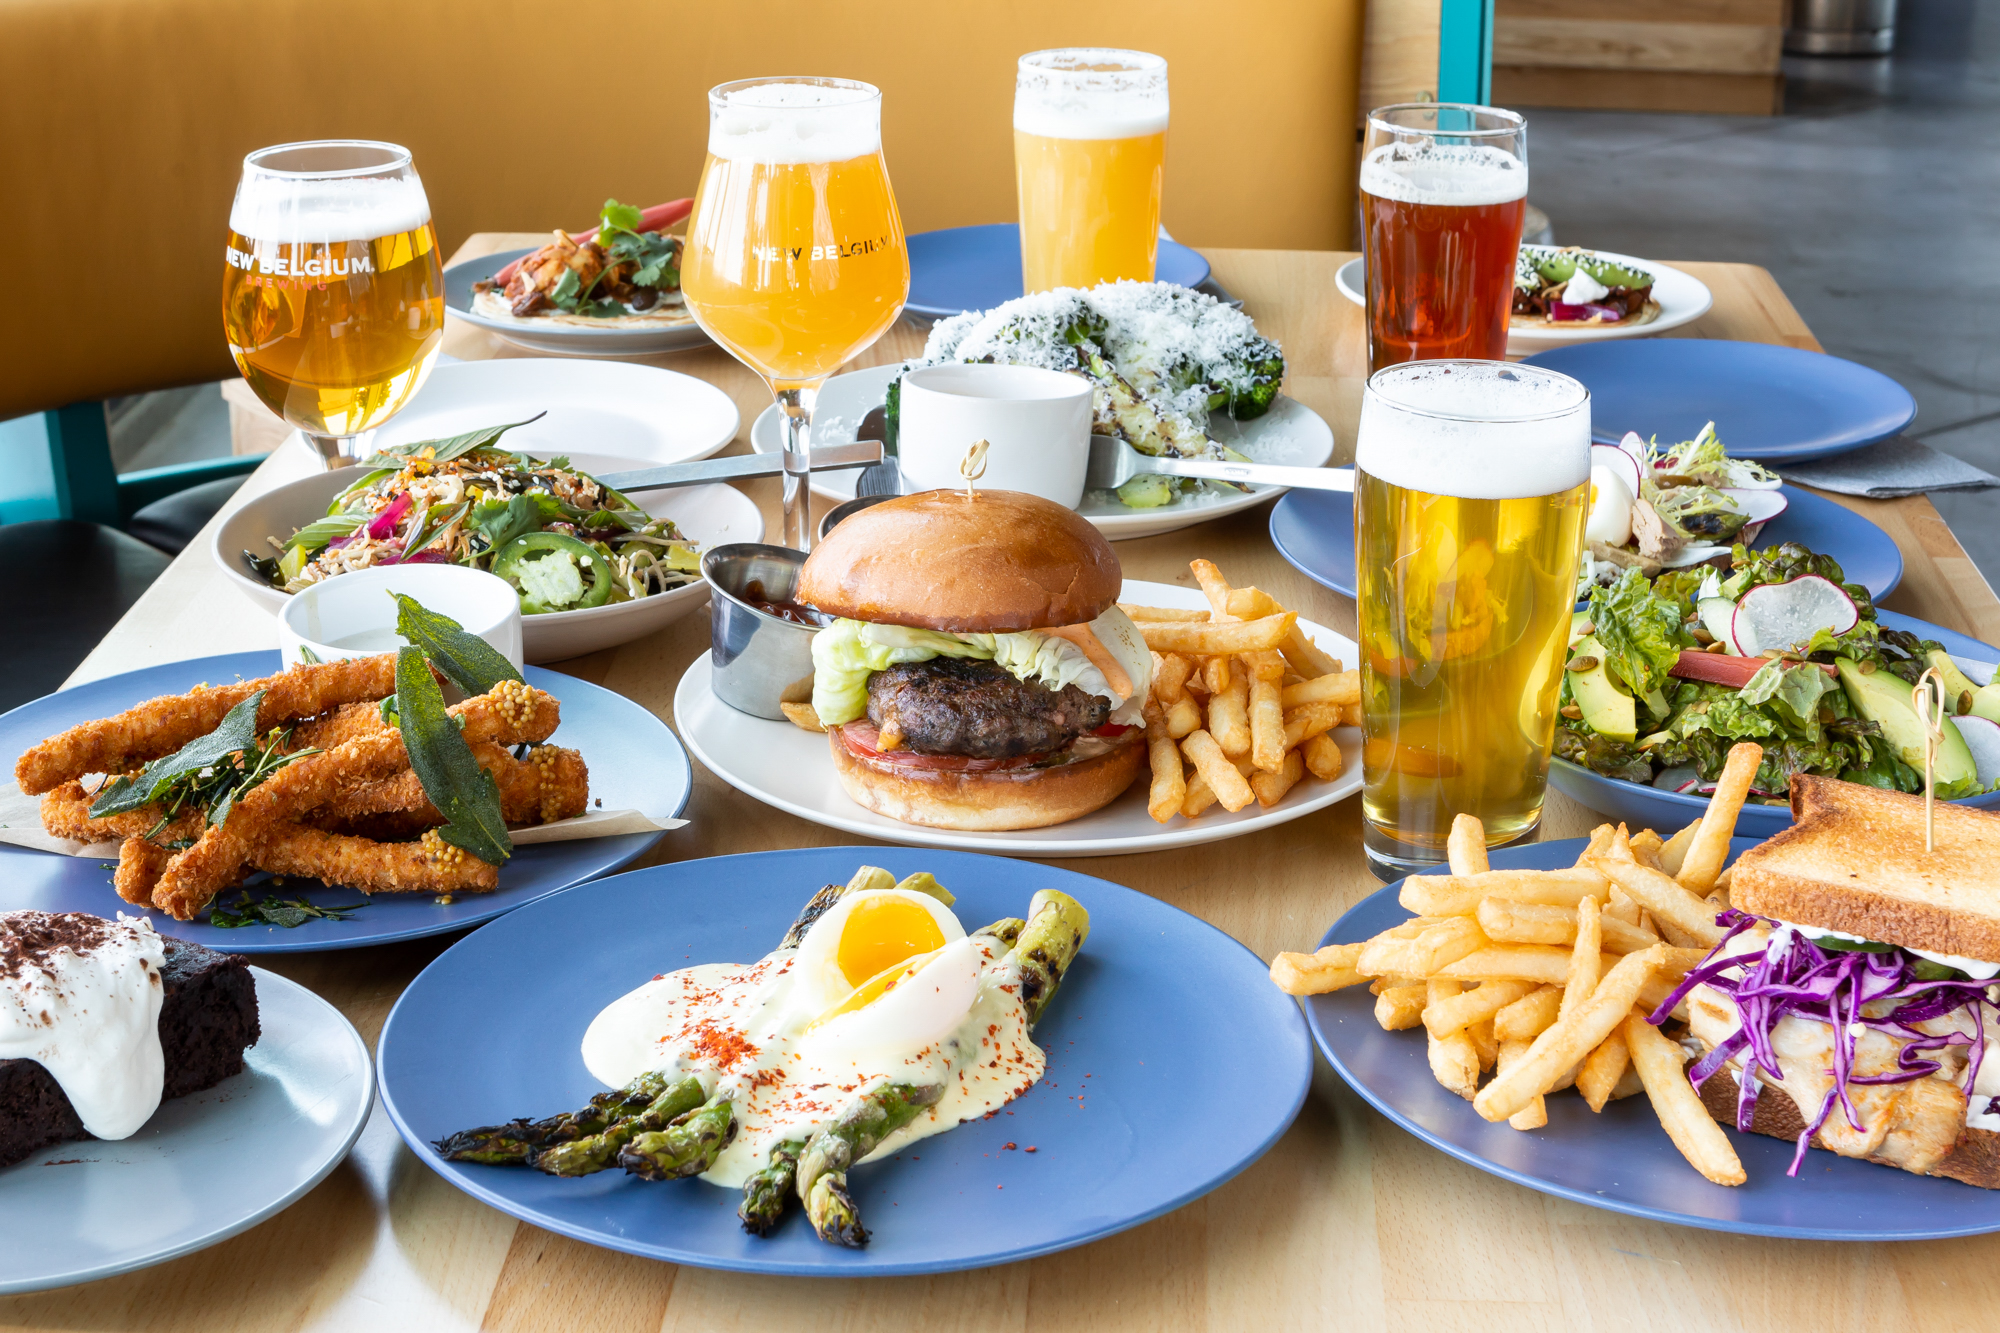 Dishes and beer from New Belgium